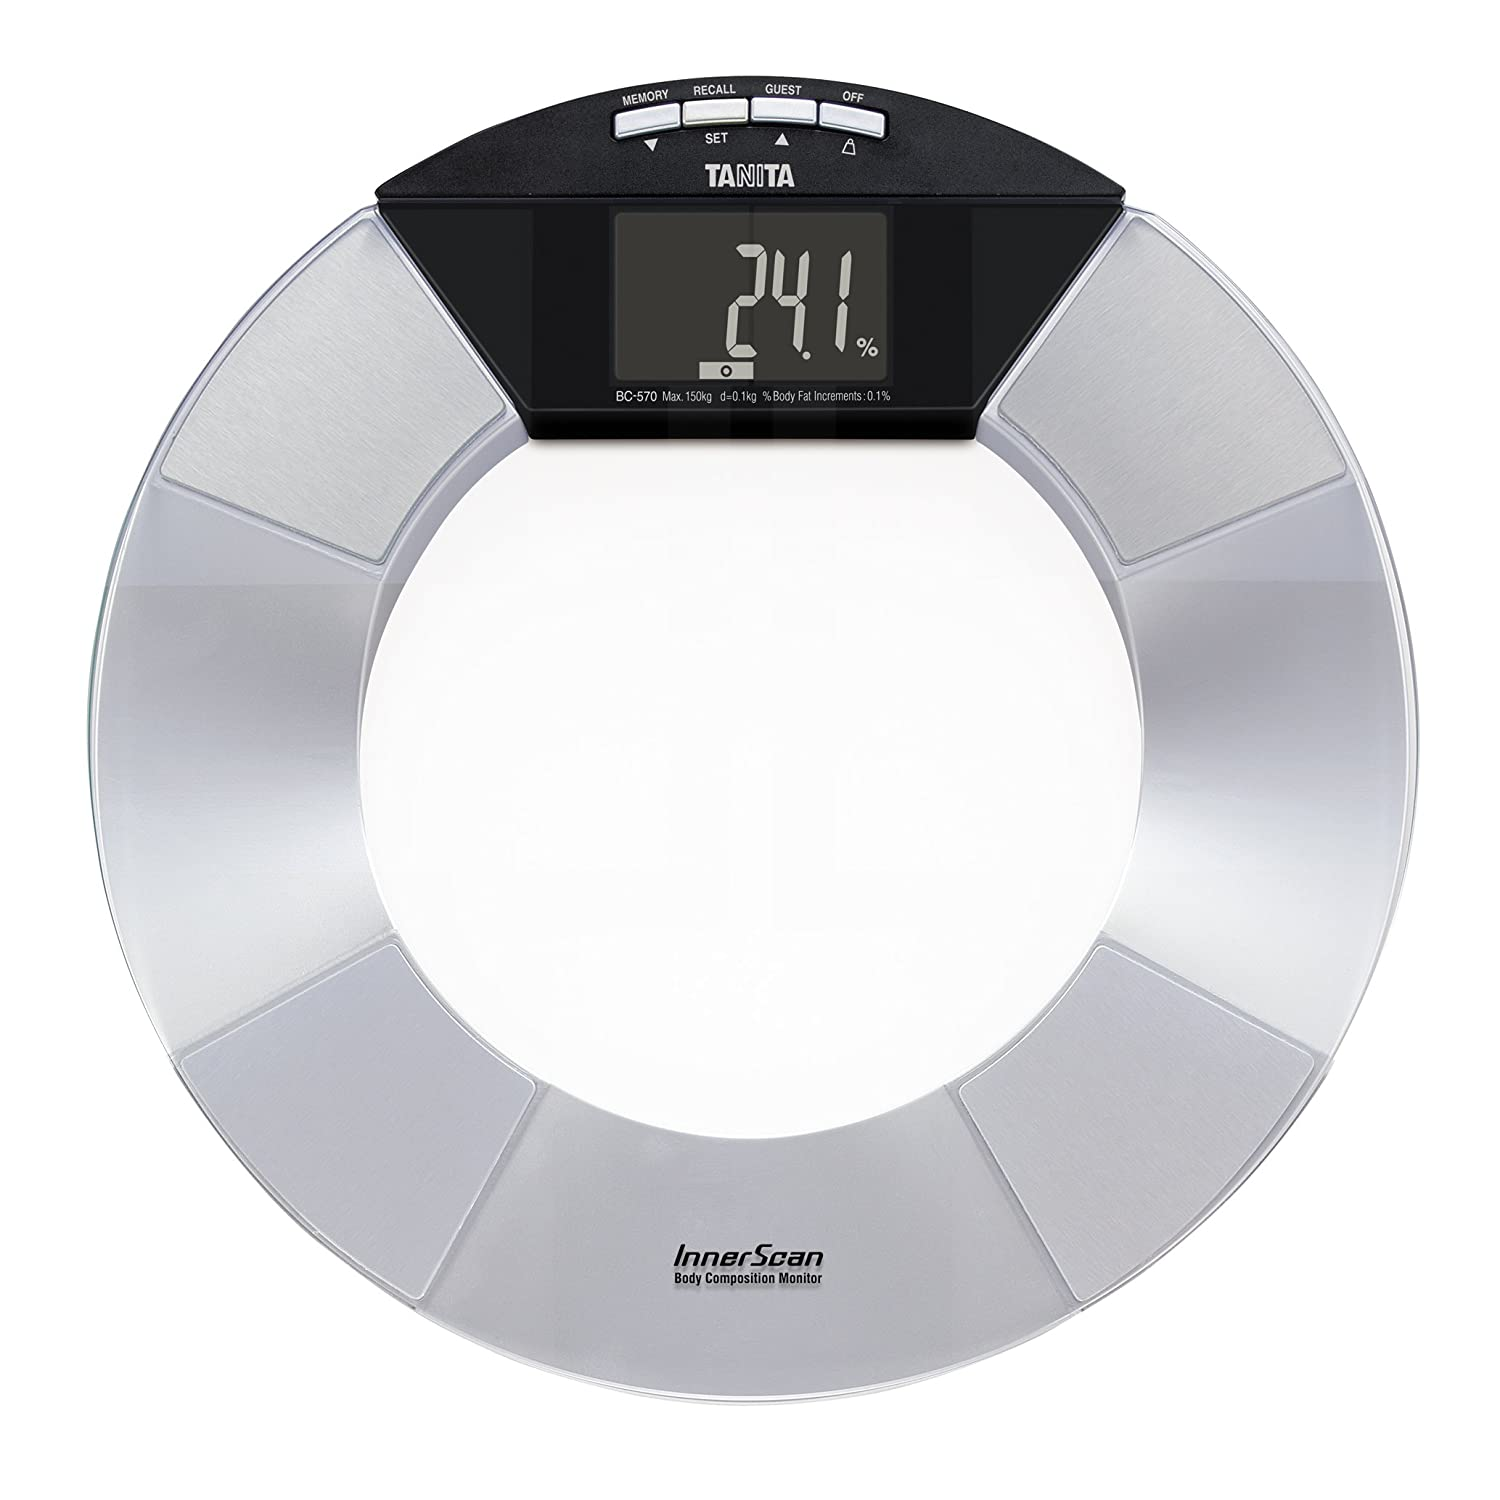 Excellent Tanita Bc570 Glass Body Composition Monitor Scale Download Free Architecture Designs Scobabritishbridgeorg